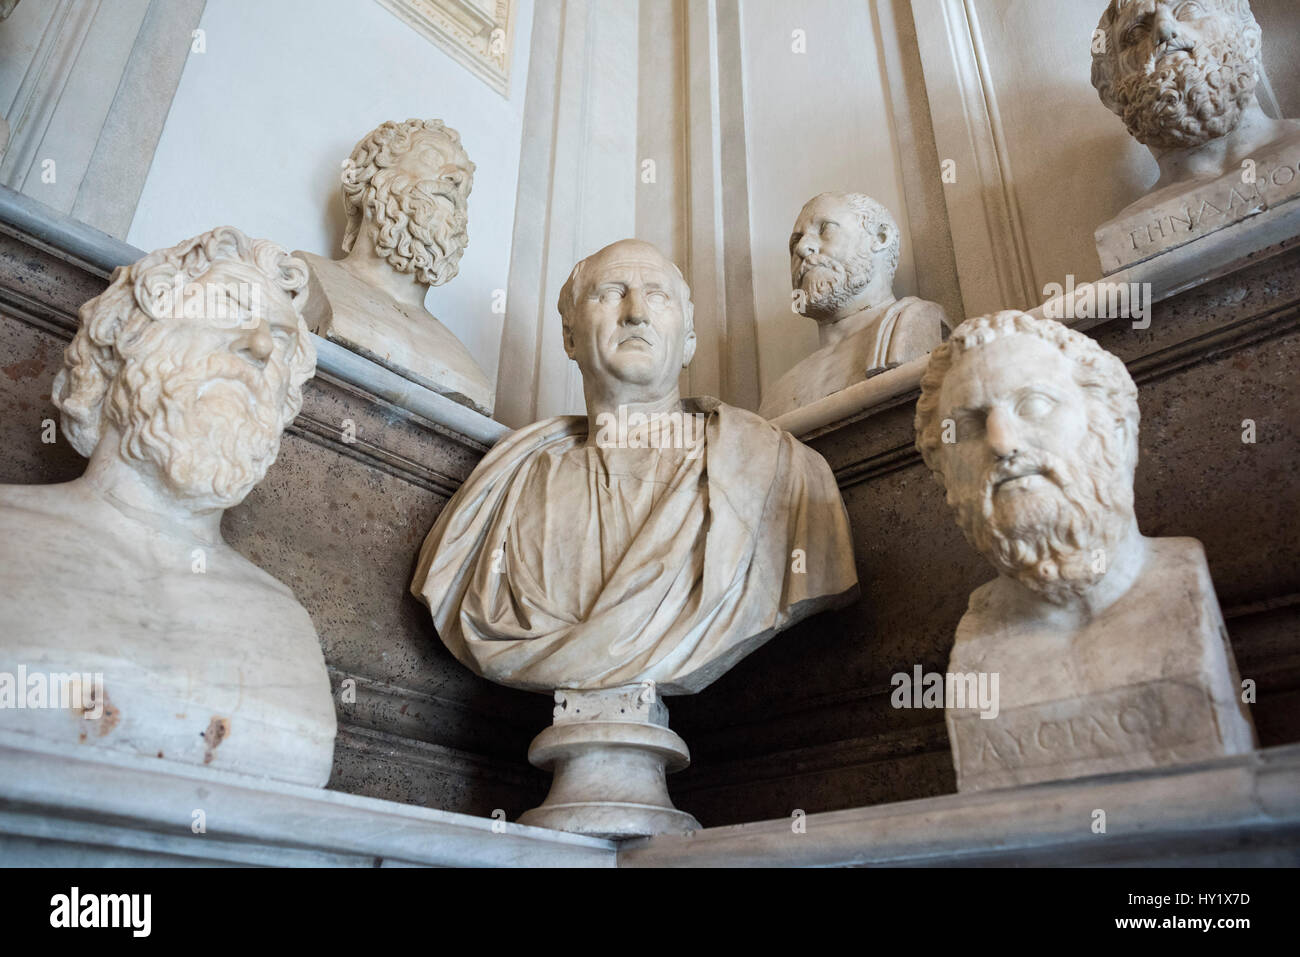 Rome. Italy. Hall of the Philosophers, Capitoline Museums. Sala dei Filosofi, Musei Capitolini. Centre; Bust portrait - Stock Image